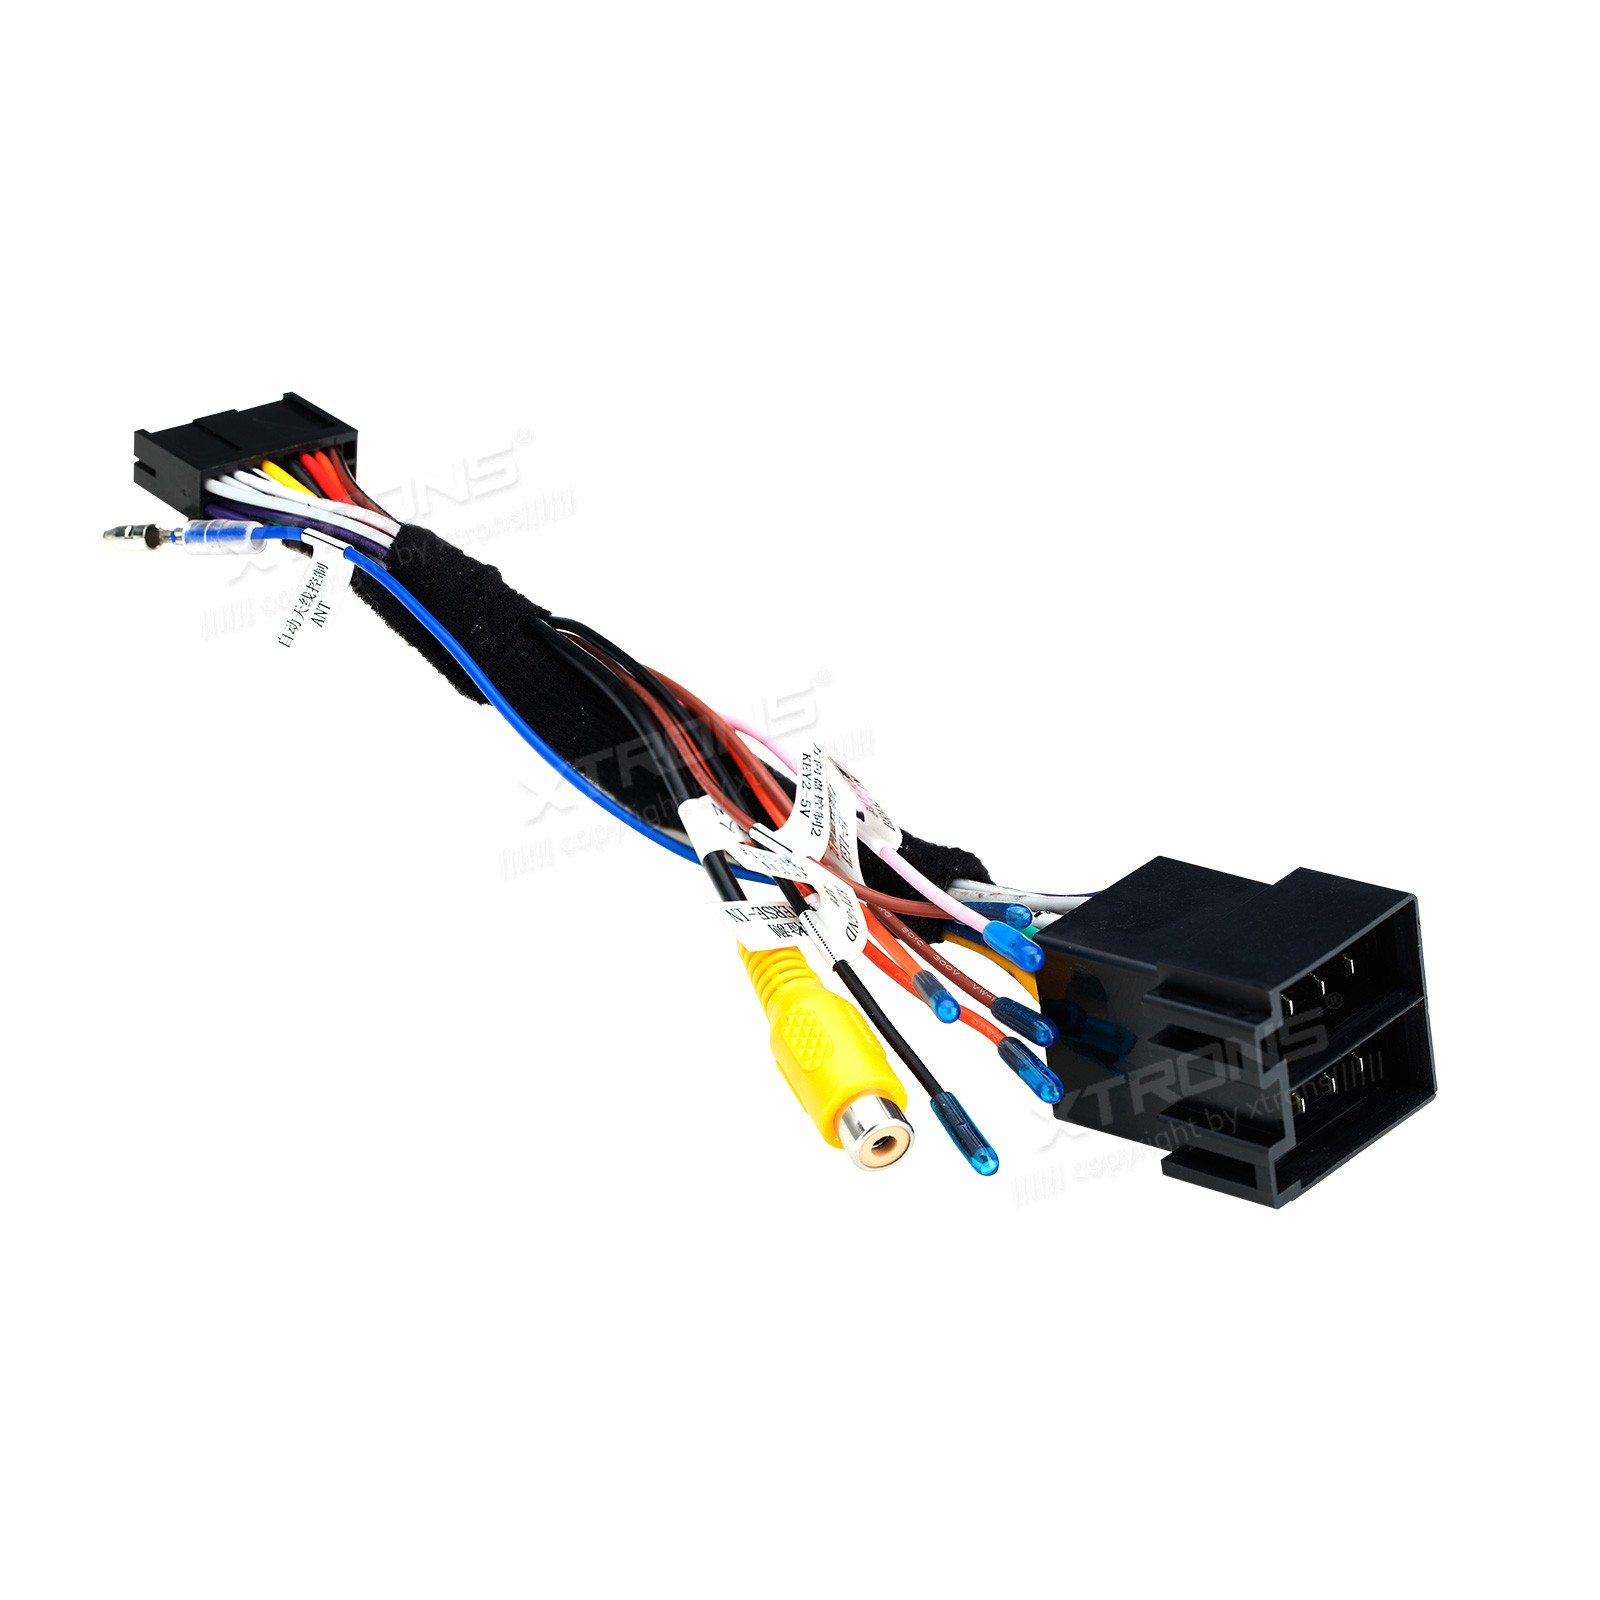 Iso Wiring Harness For The Installation Of Xtrons Bmw E46 Units On Installing A Rover 75 Mg